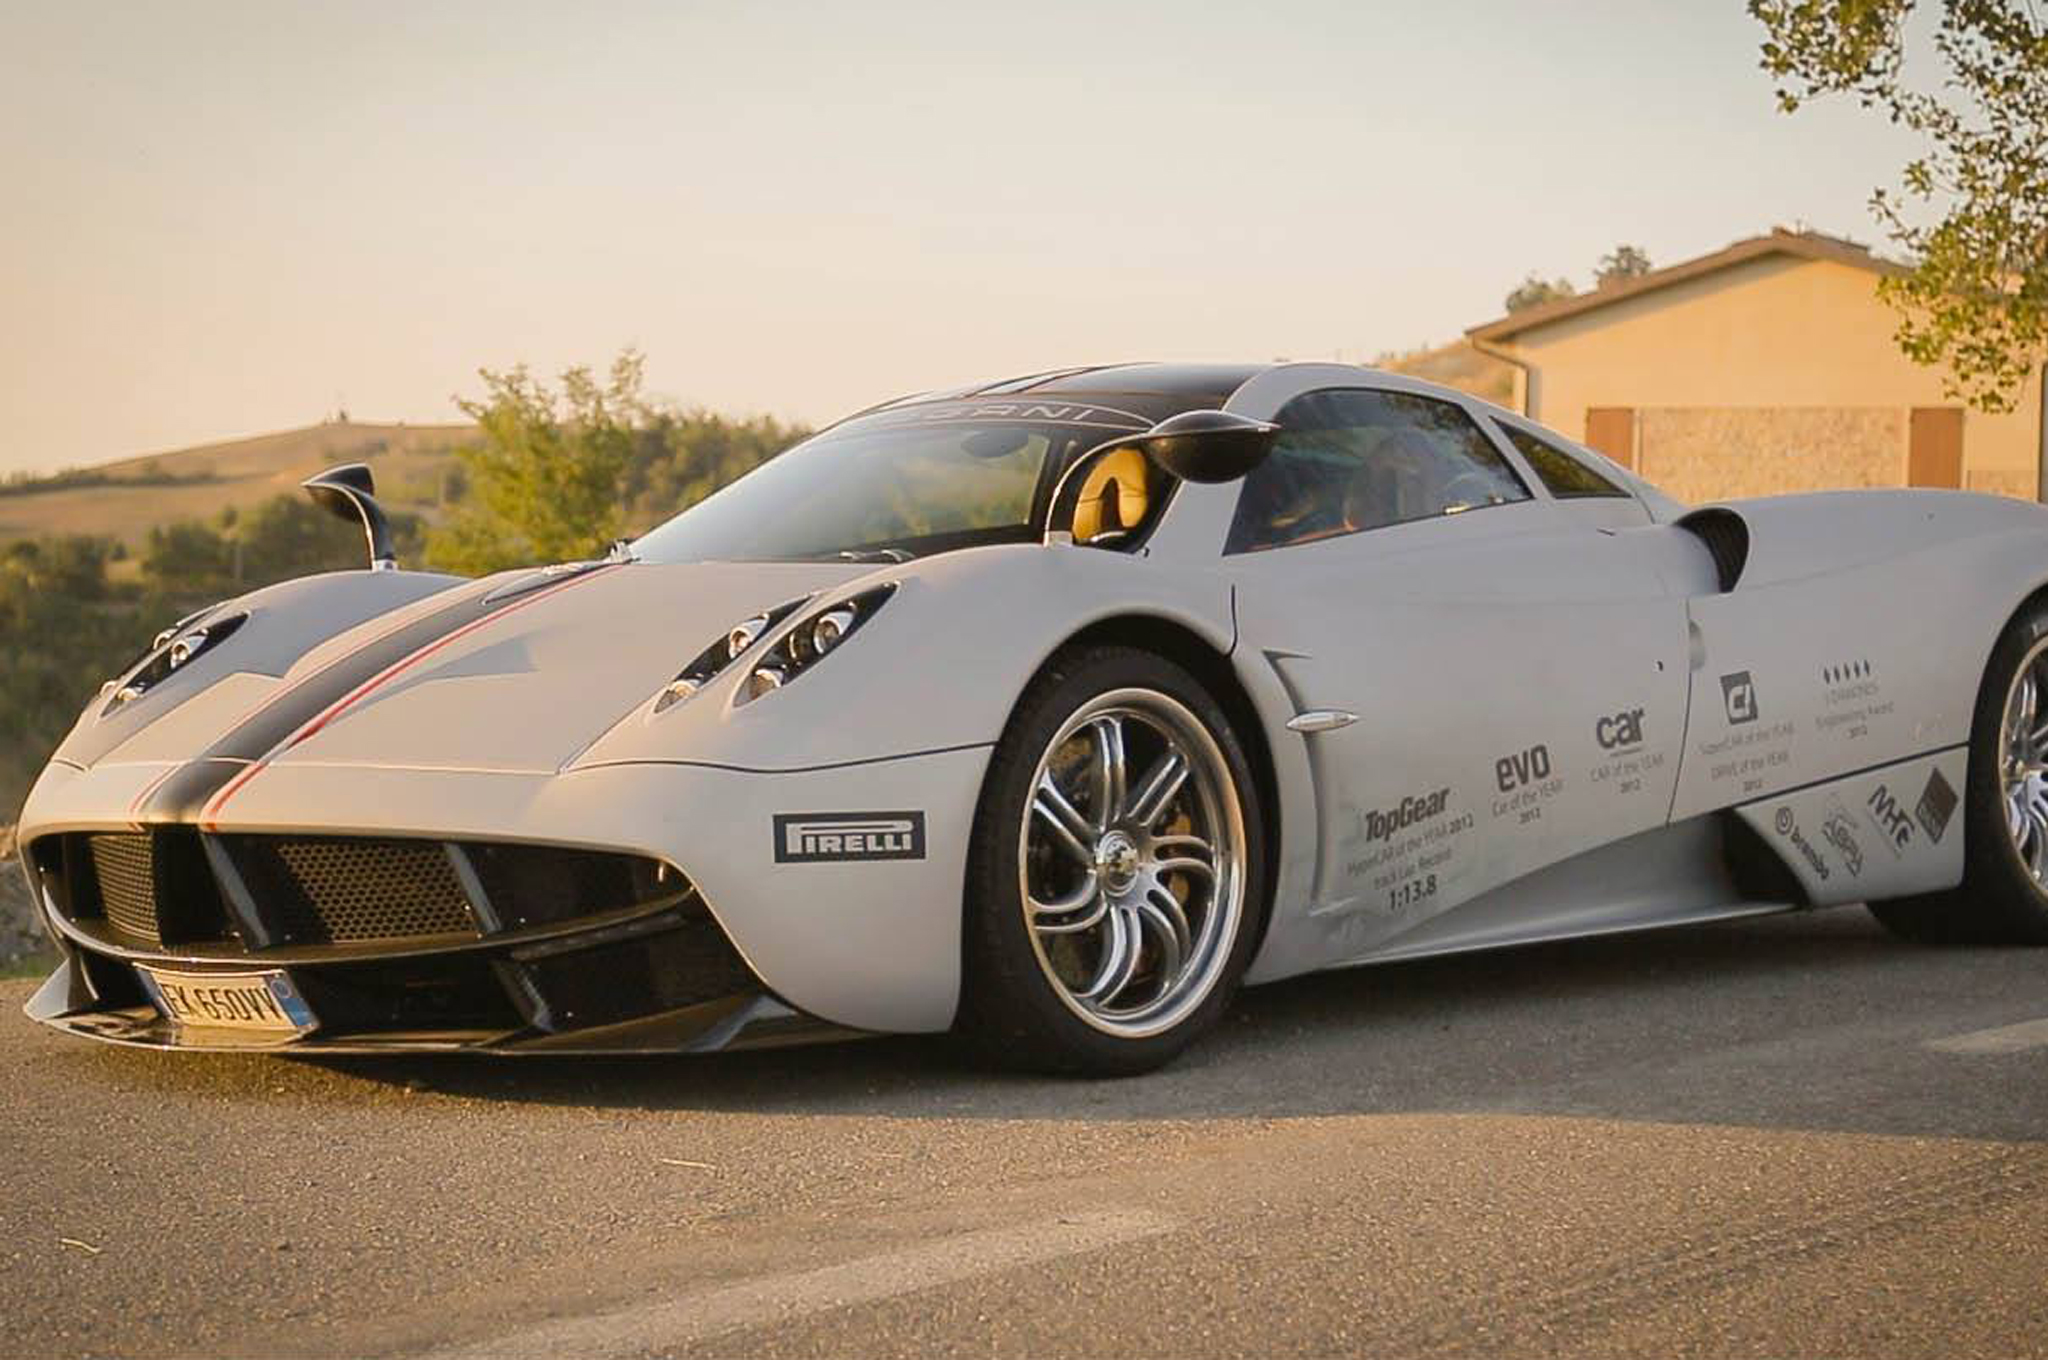 Pagani Huayra 2014: Review, Amazing Pictures and Images – Look at